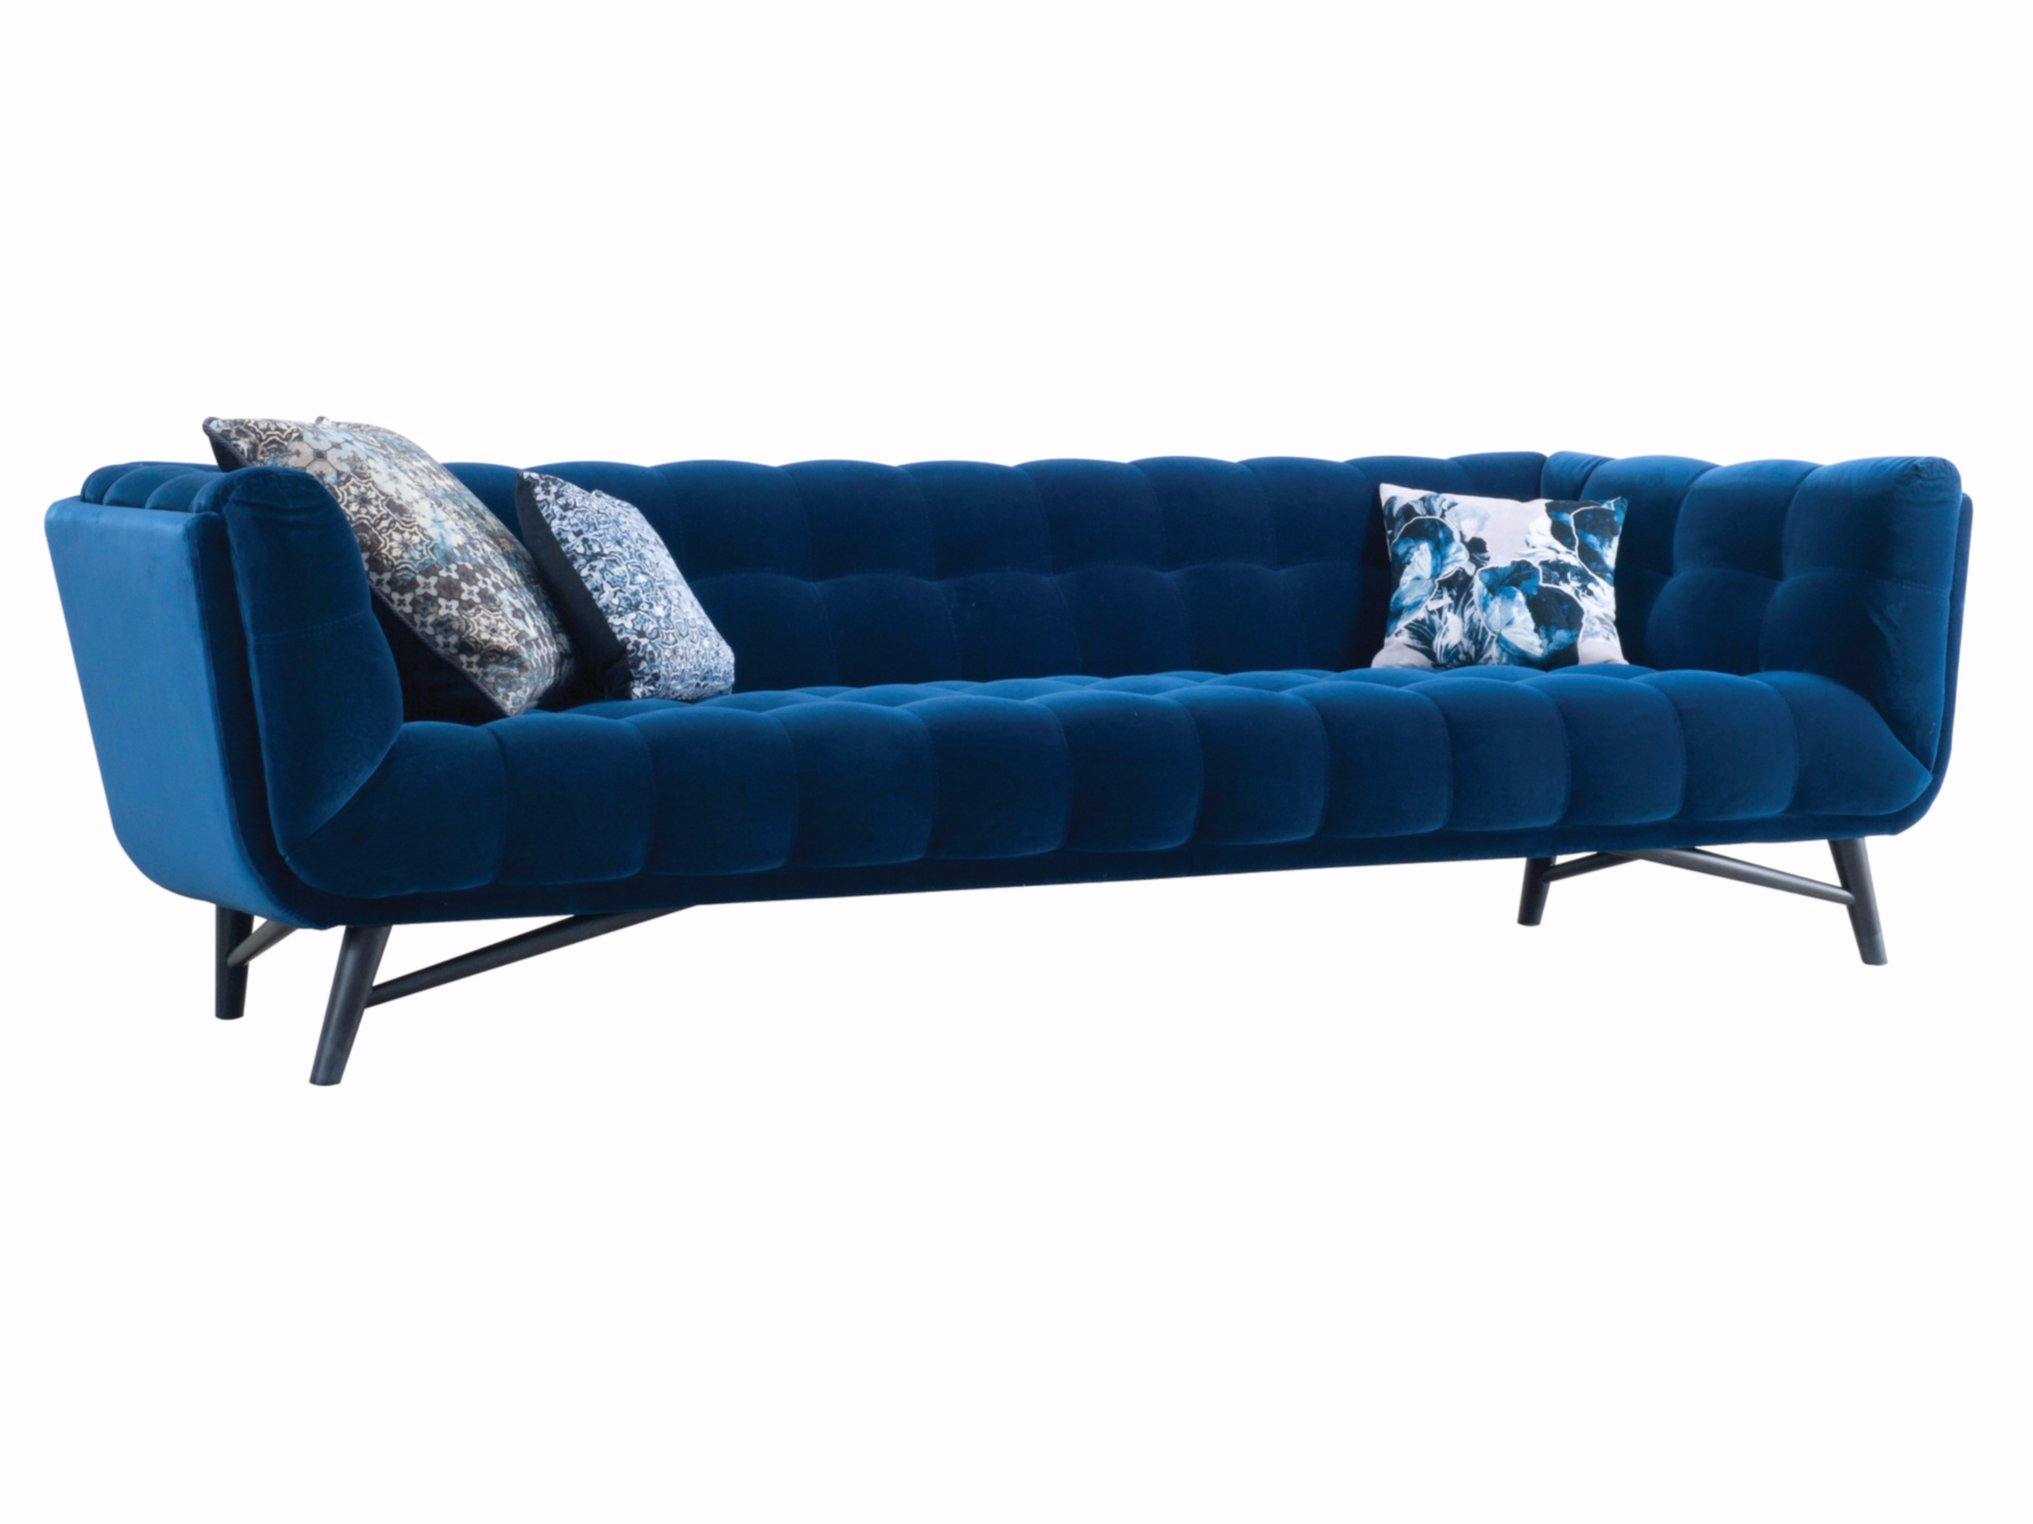 Voyage Immobile Sofa From Roche Bobois